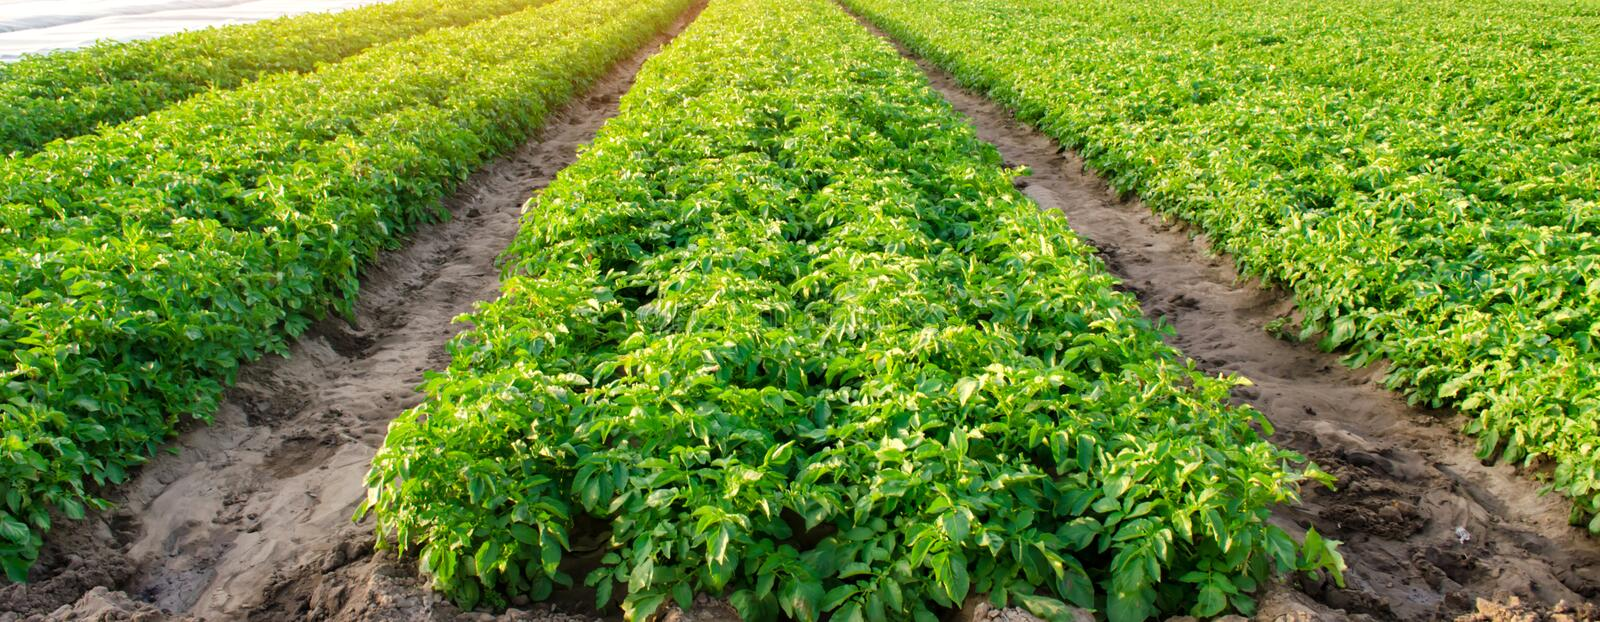 Rows of potatoes grow on the farm. Growing organic vegetables in the field. Farming. Agriculture. Selective focus.  royalty free stock photo